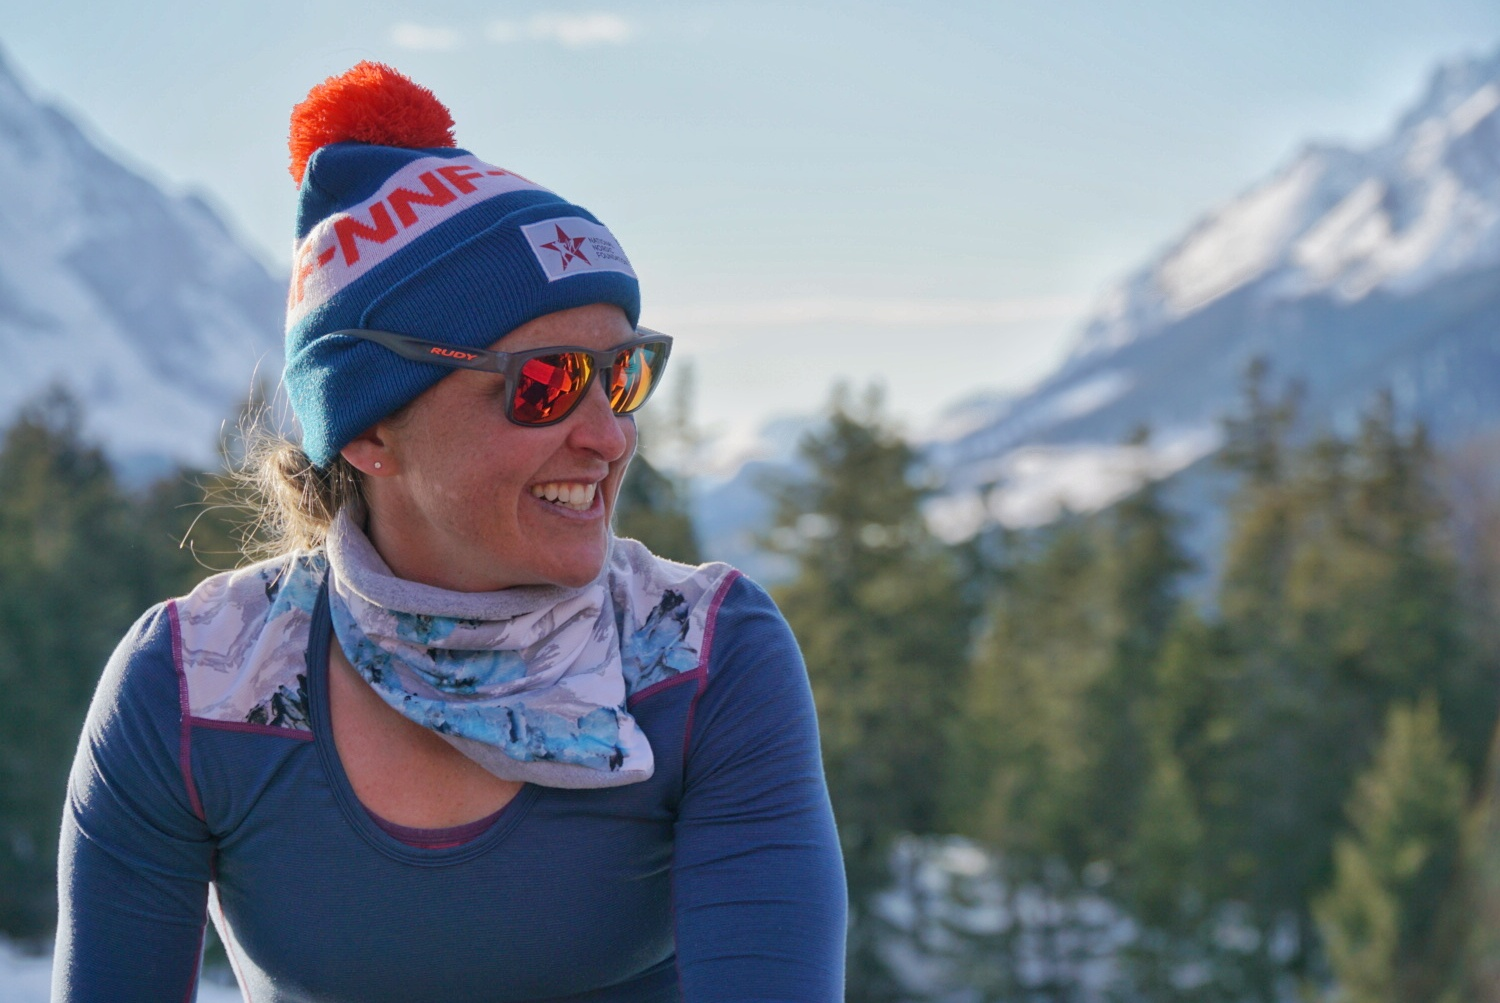 "Holly - Holly Brooks is originally from Seattle. Shortly after college she moved to Anchorage, coaching for the Alaska Pacific University Ski Center. In 2009 she set a ""crazy dream goal"